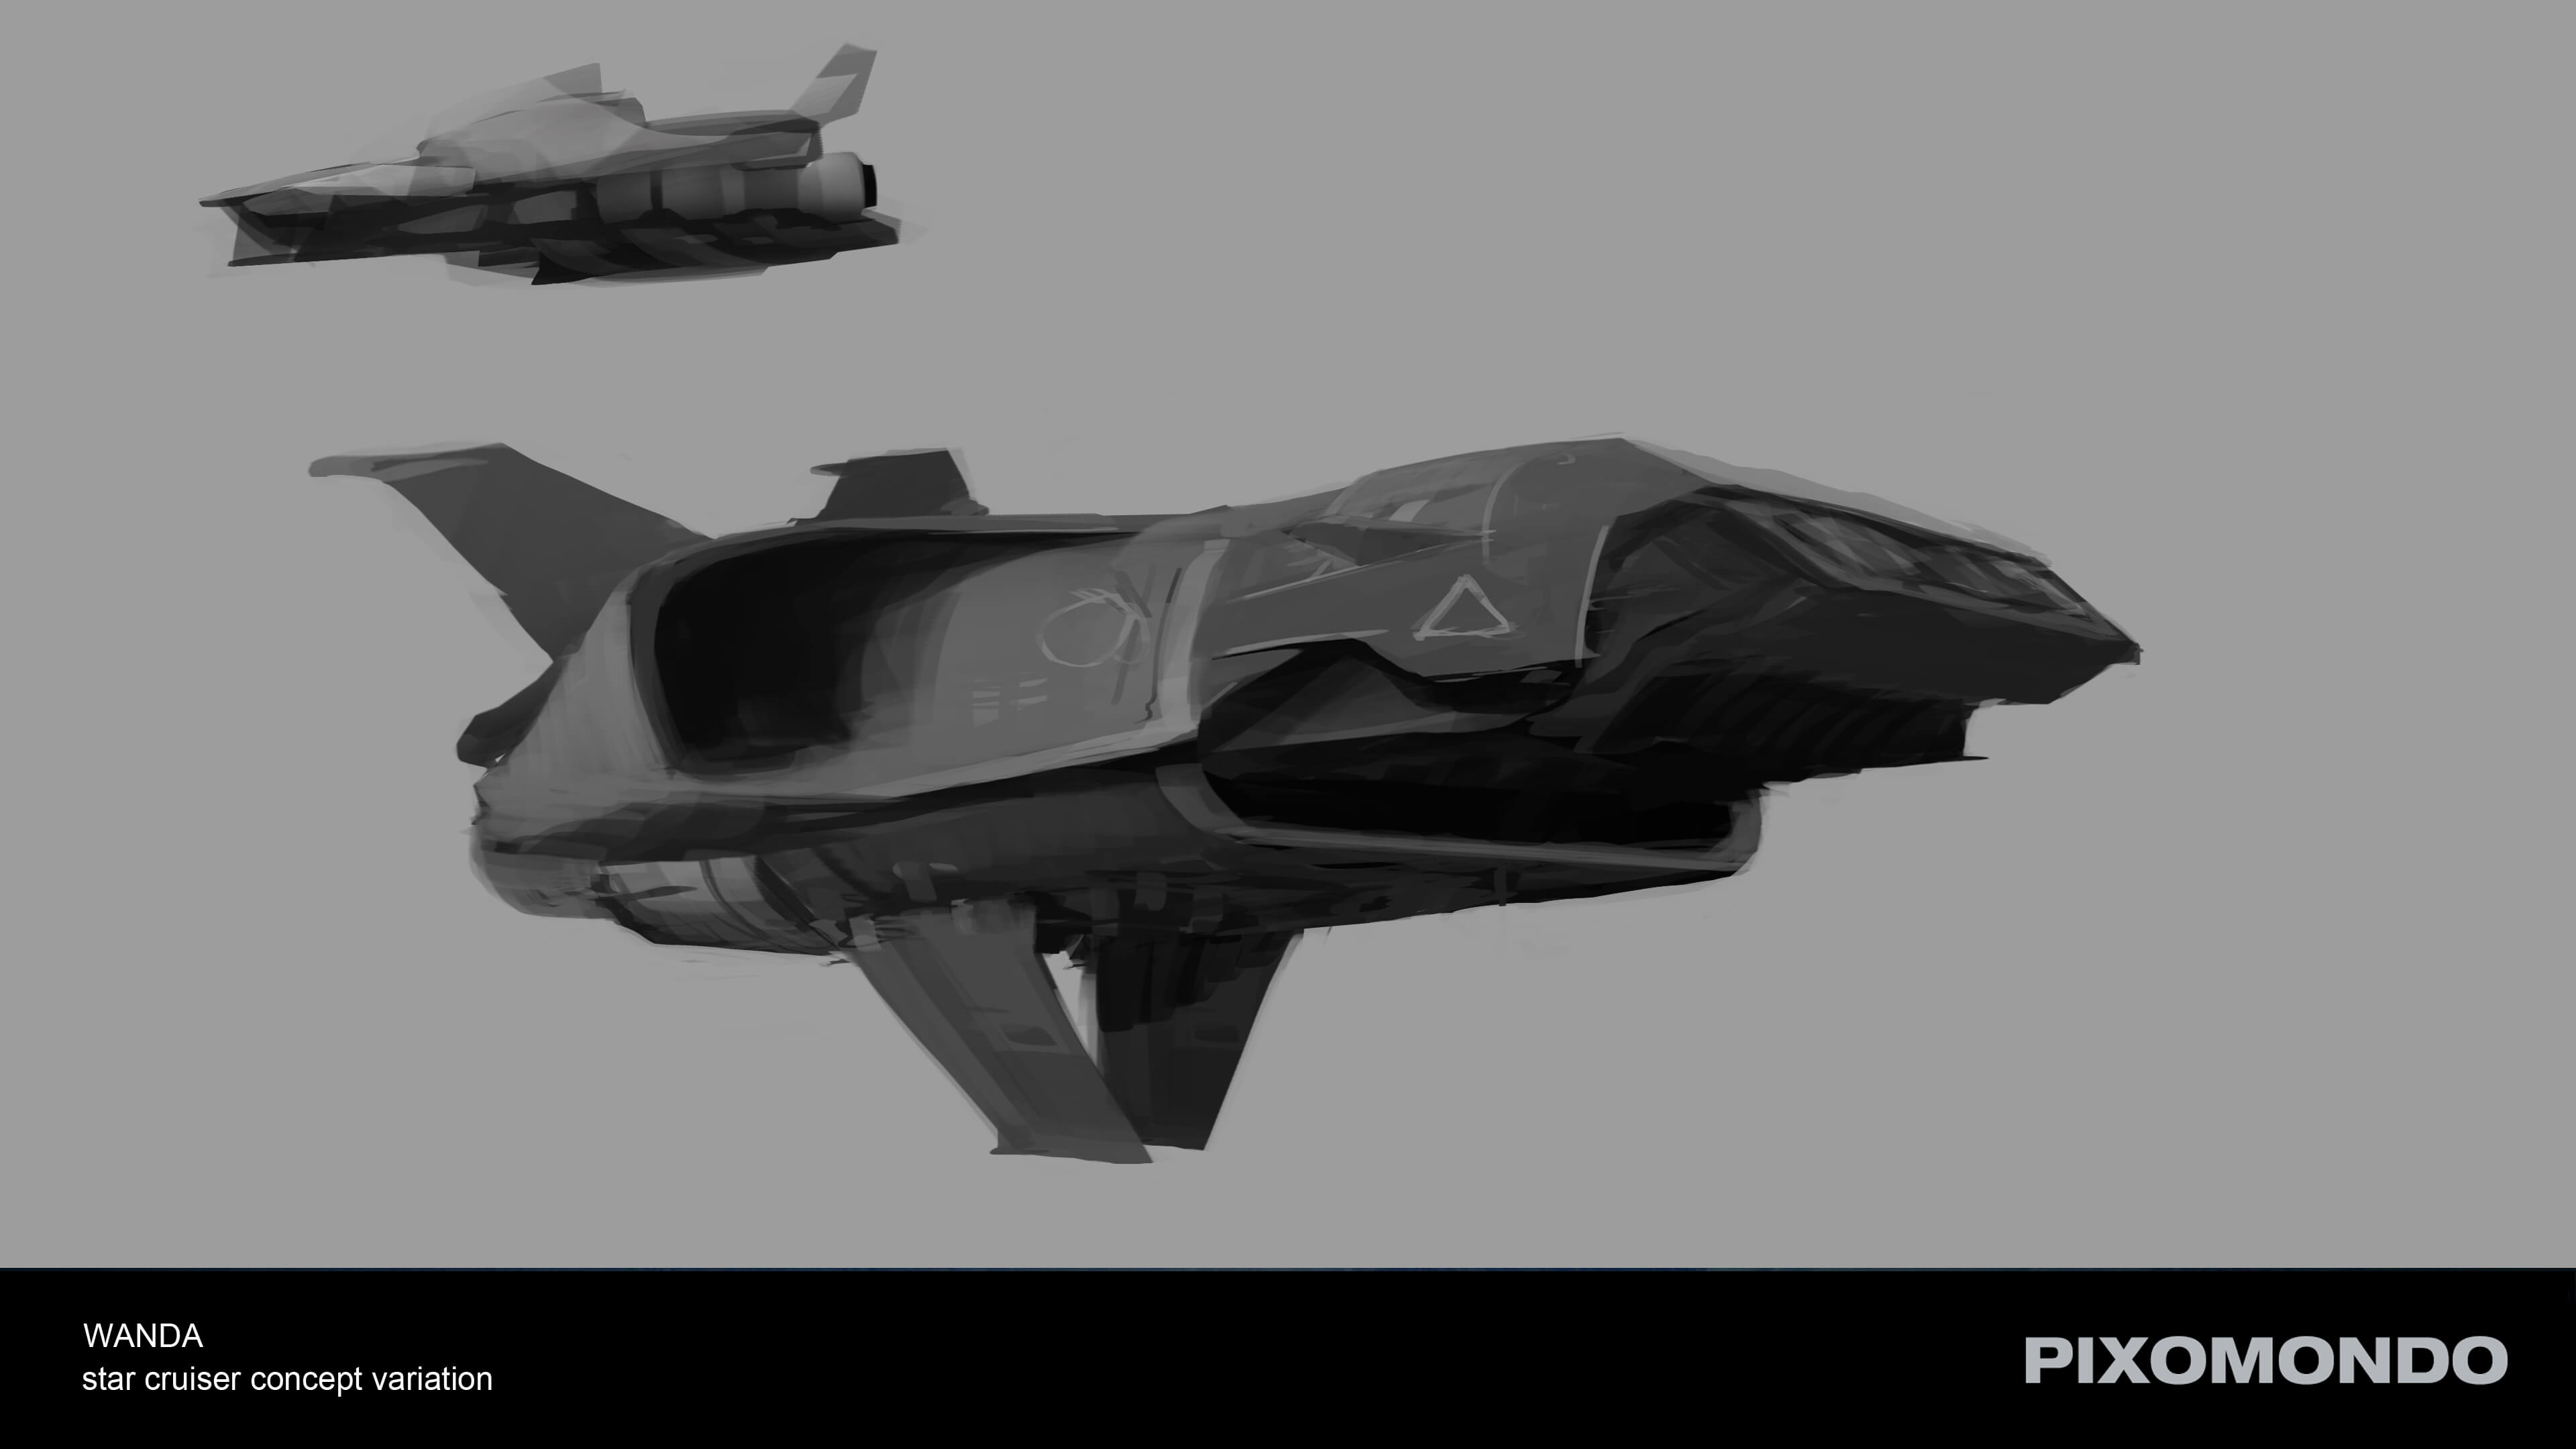 vehicle-concept-wanda-pixomondo-felix-botho-haas-cruiserA-v004d